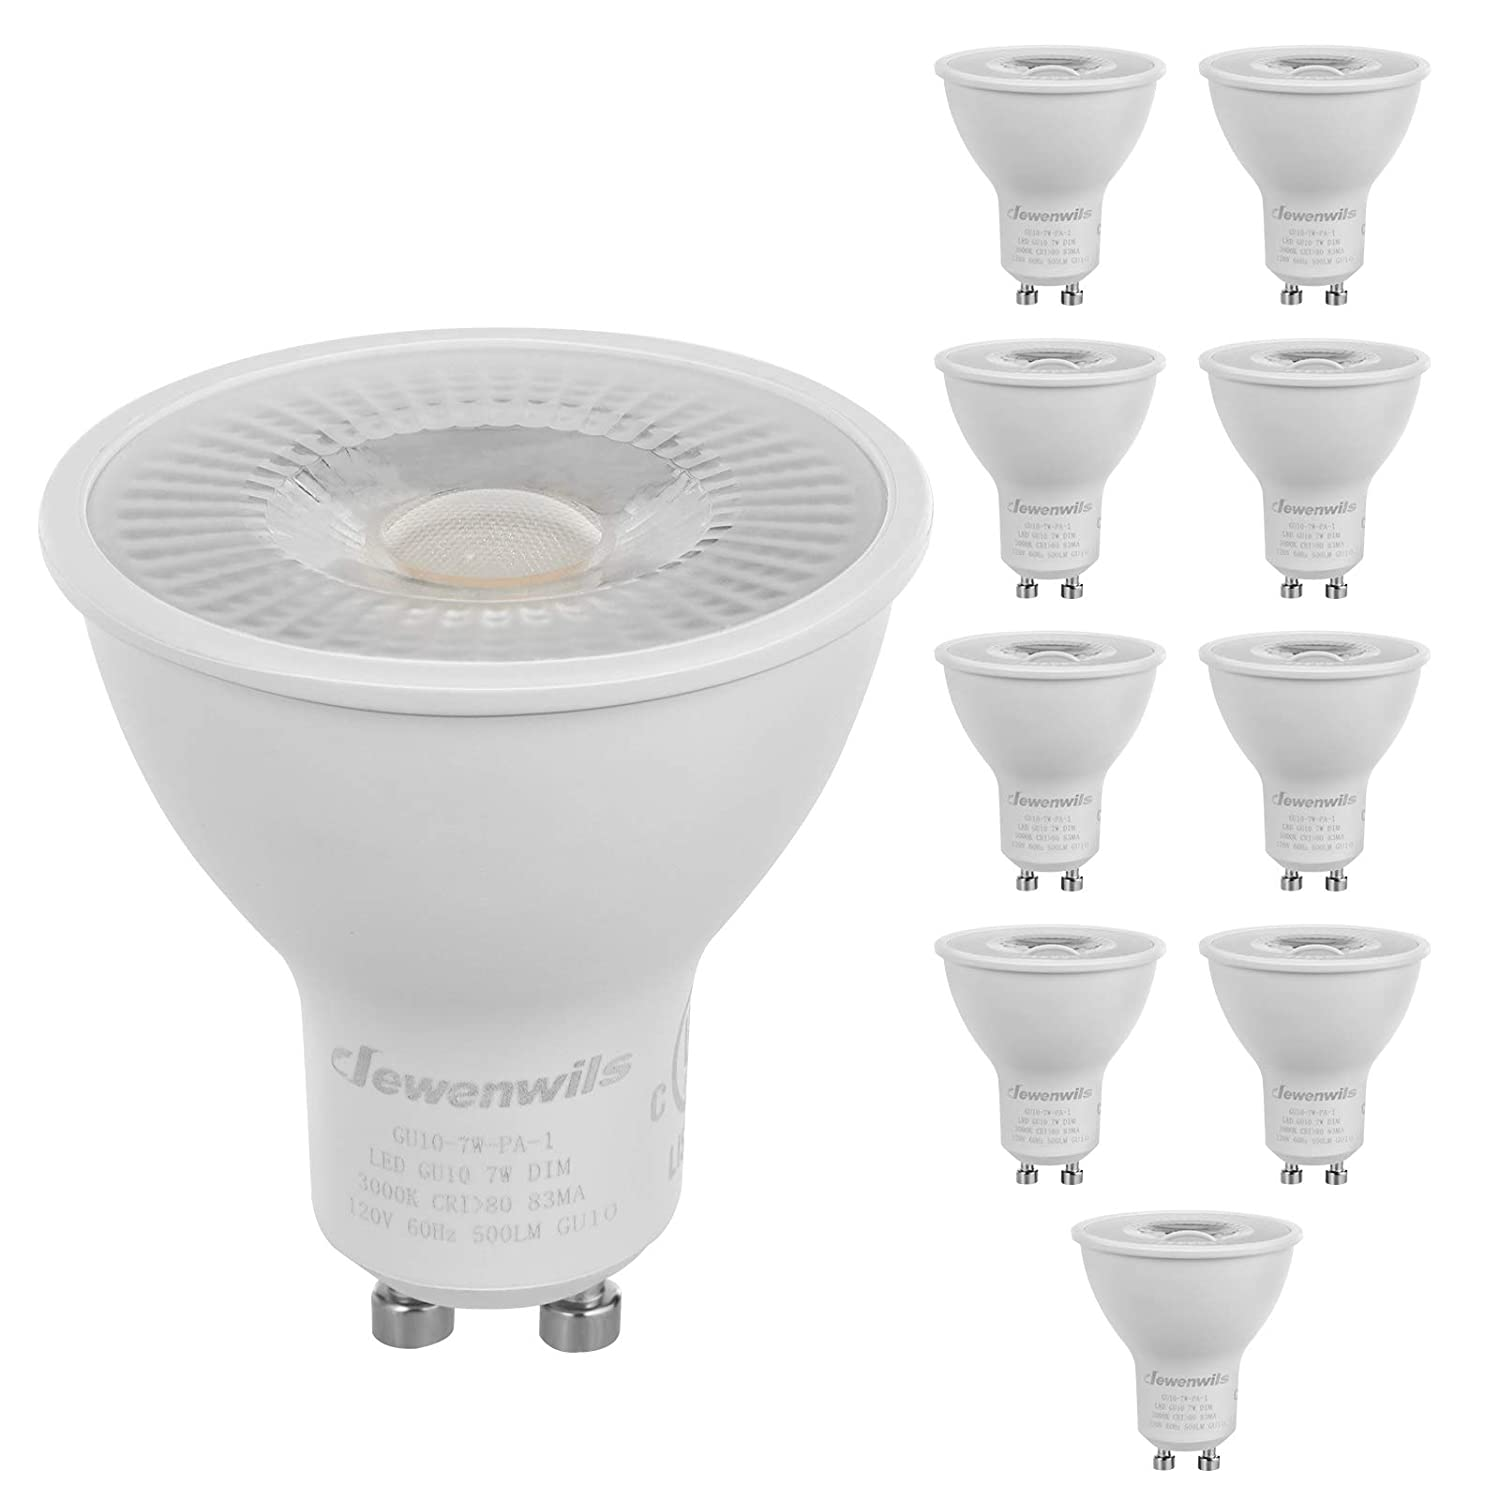 DEWENWILS 10-Pack GU10 LED Dimmable Bulb, 500LM, 3000K Warm White Track Light Bulb, 7W(50W Halogen Equivalent) LED Bulbs, UL Listed